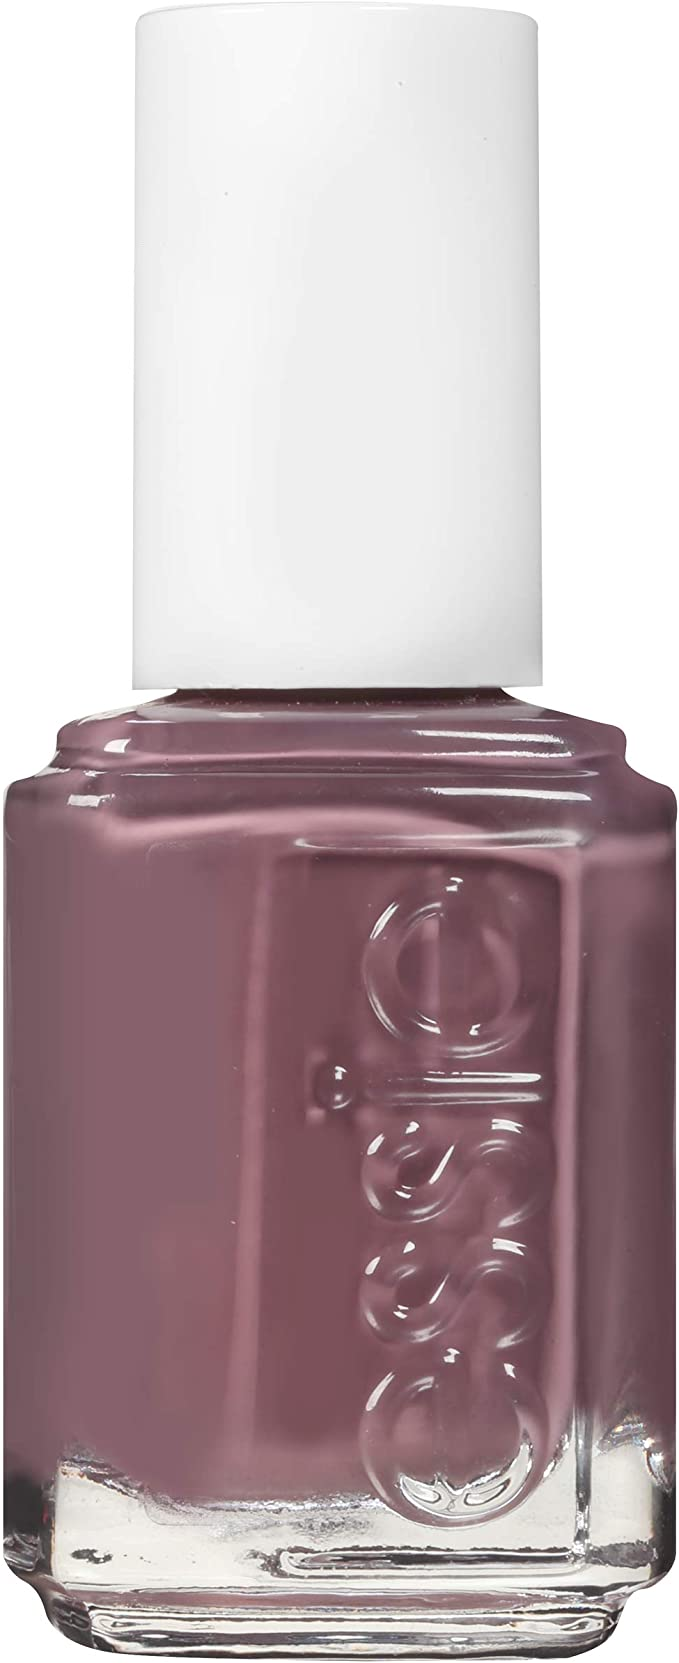 Essie Nail Polish Greys Merino Cool 13 5ml Amazon Ca Luxury Beauty